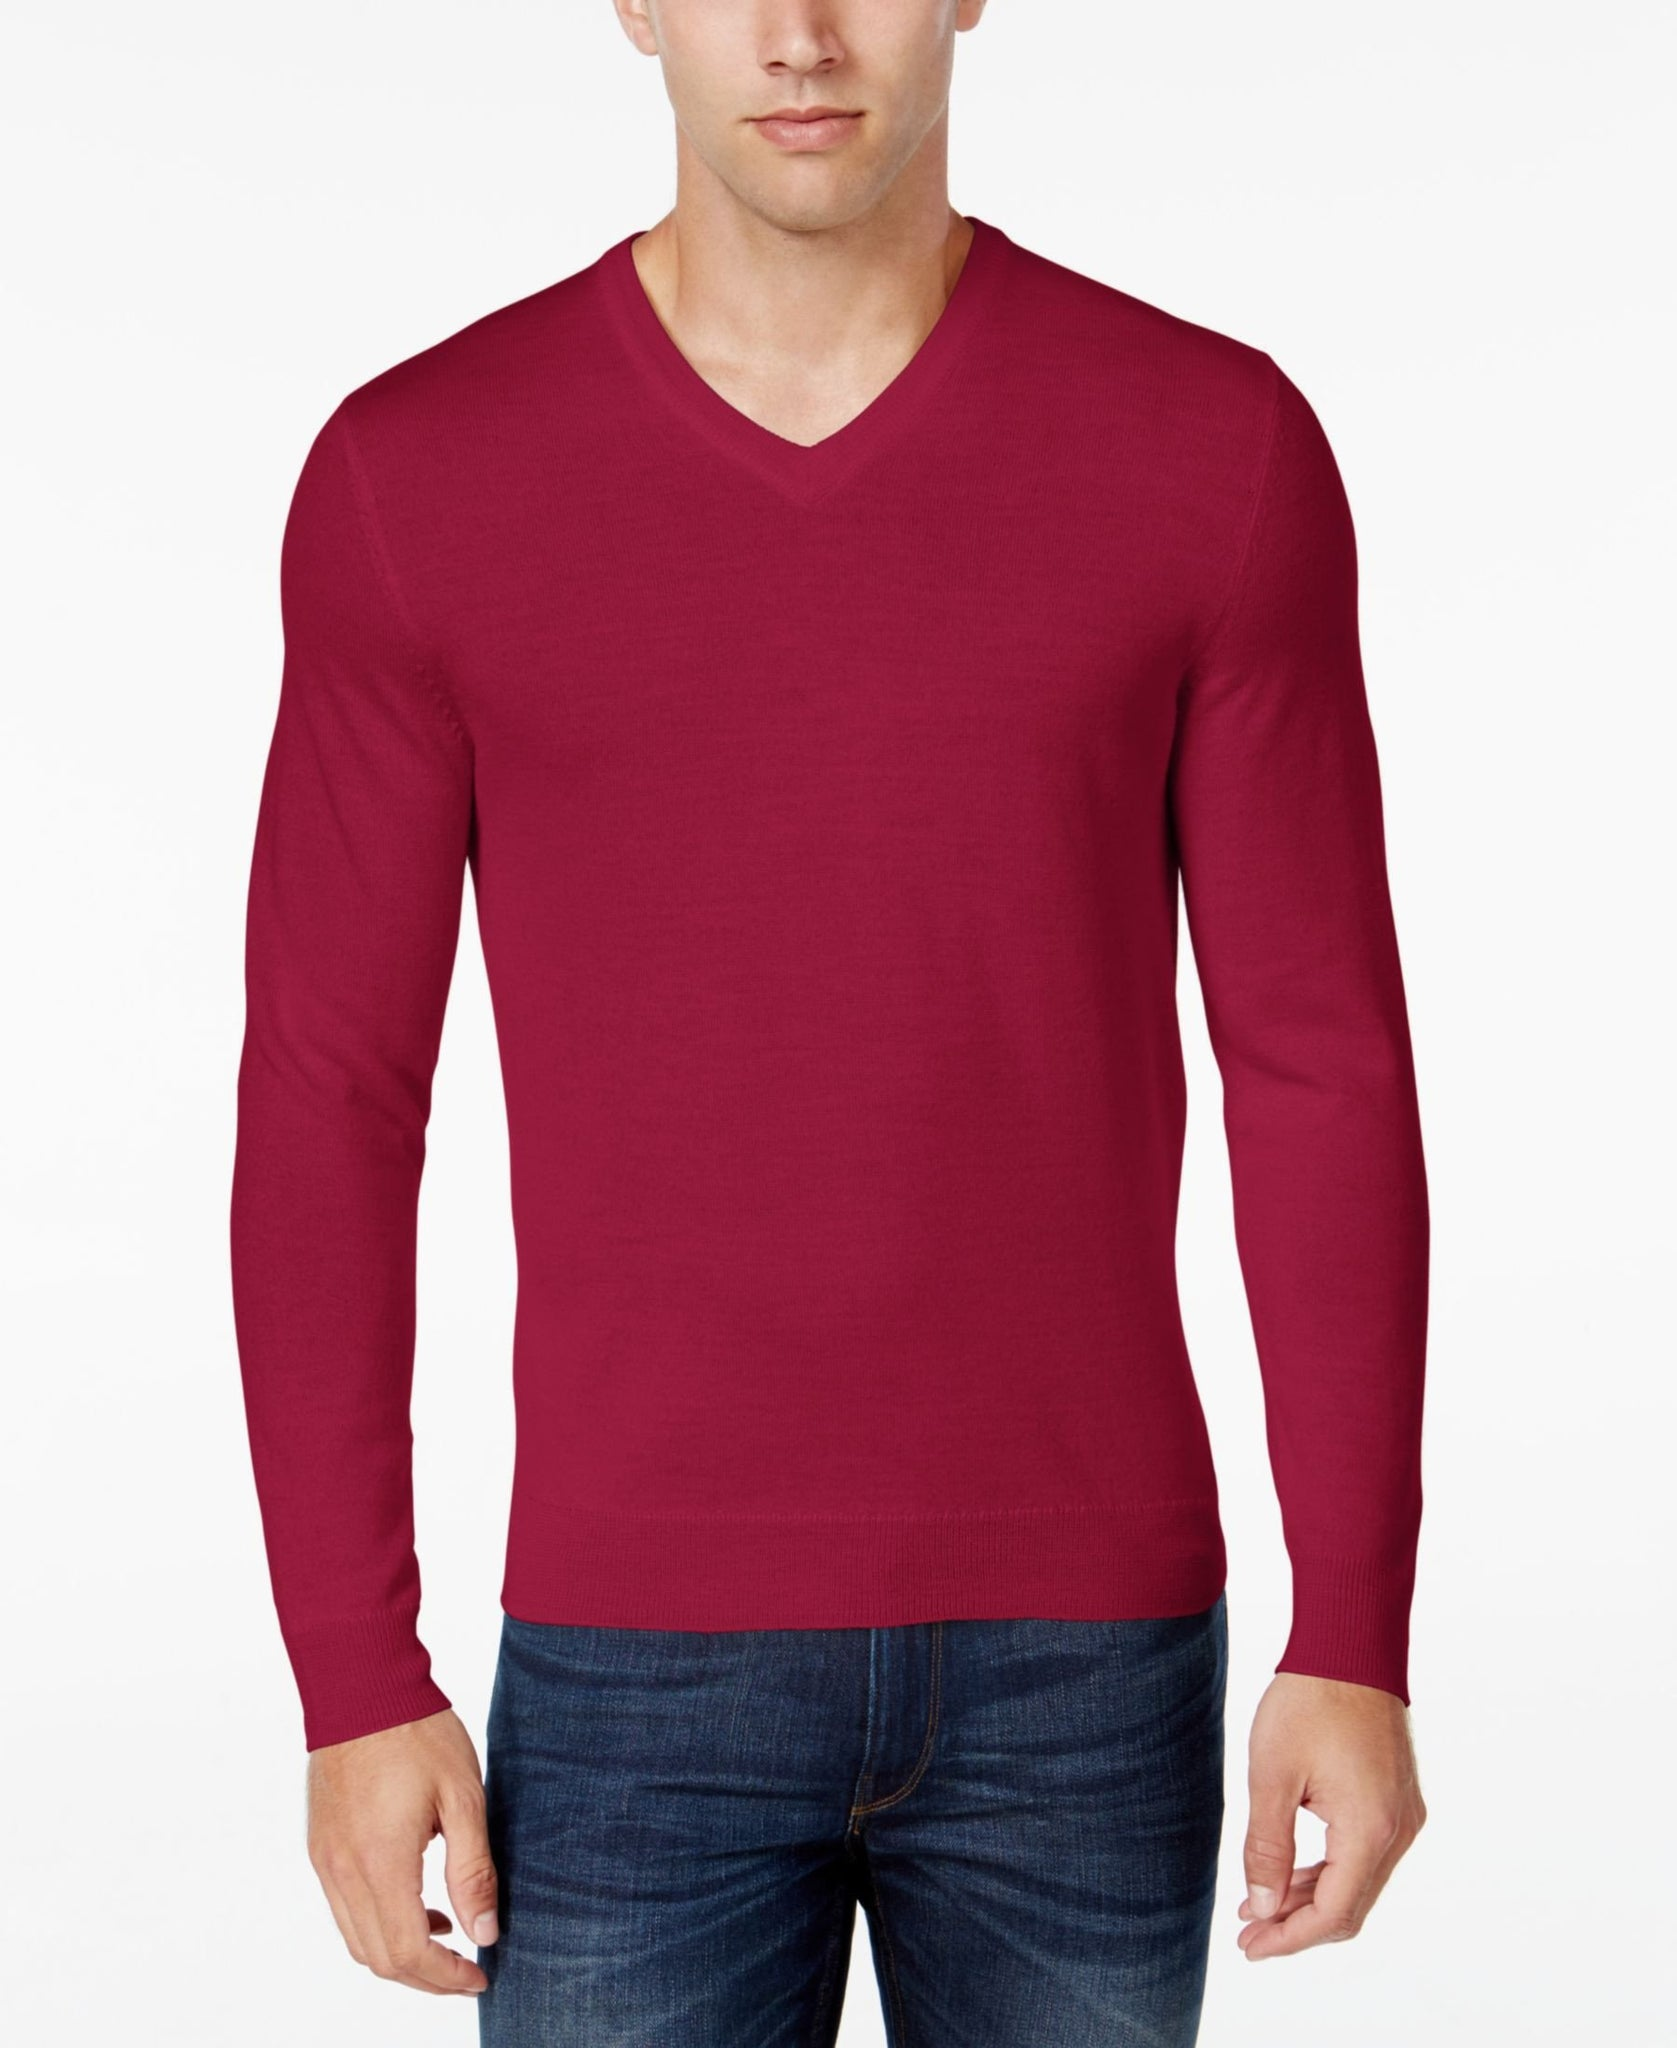 Club Room Merino Blend Pullover Sweater Cherry XLarge